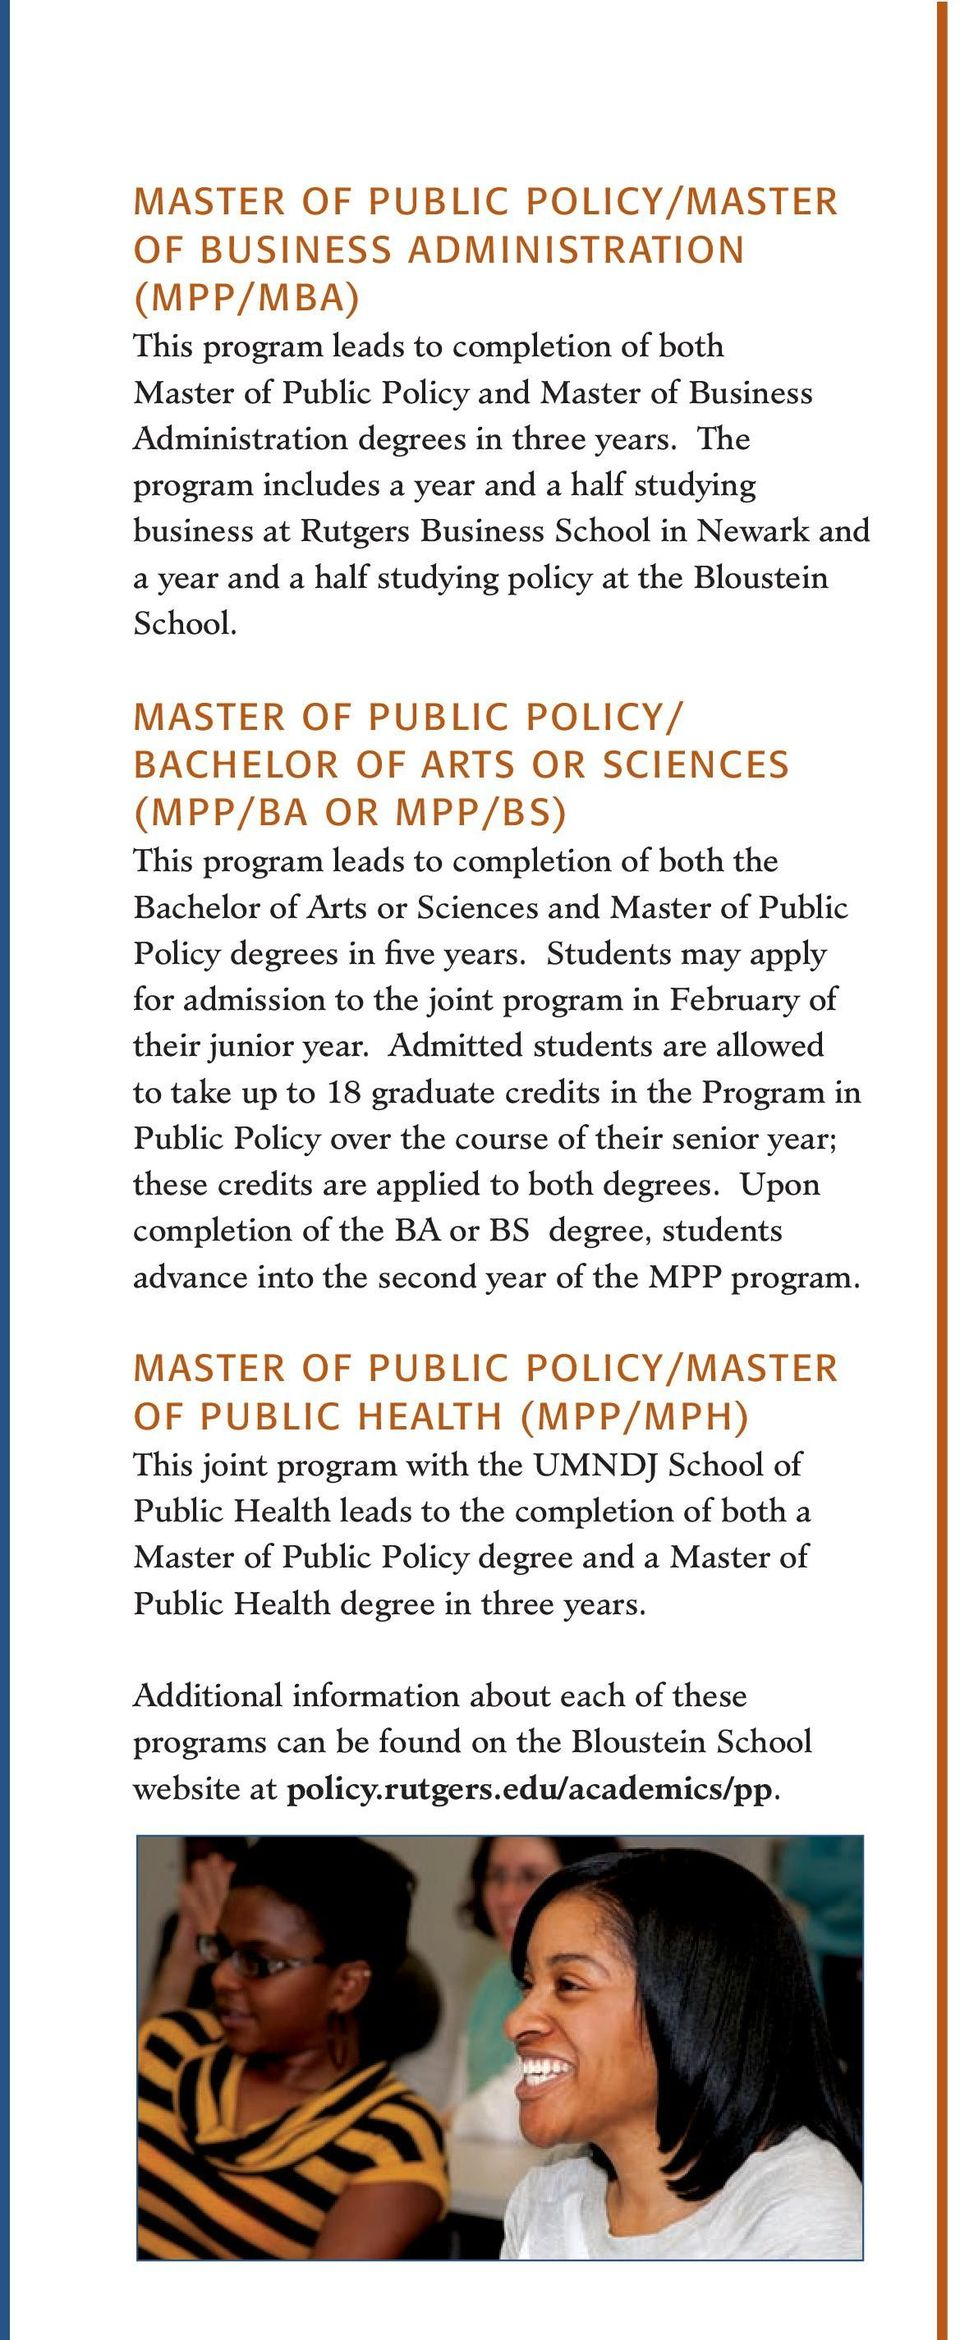 MASTER OF PUBLIC POLICY/ BACHELOR OF ARTS OR SCIENCES (MPP/BA or MPP/BS) This program leads to completio of both the Bachelor of Arts or Scieces ad Master of Public Policy degrees i five years.